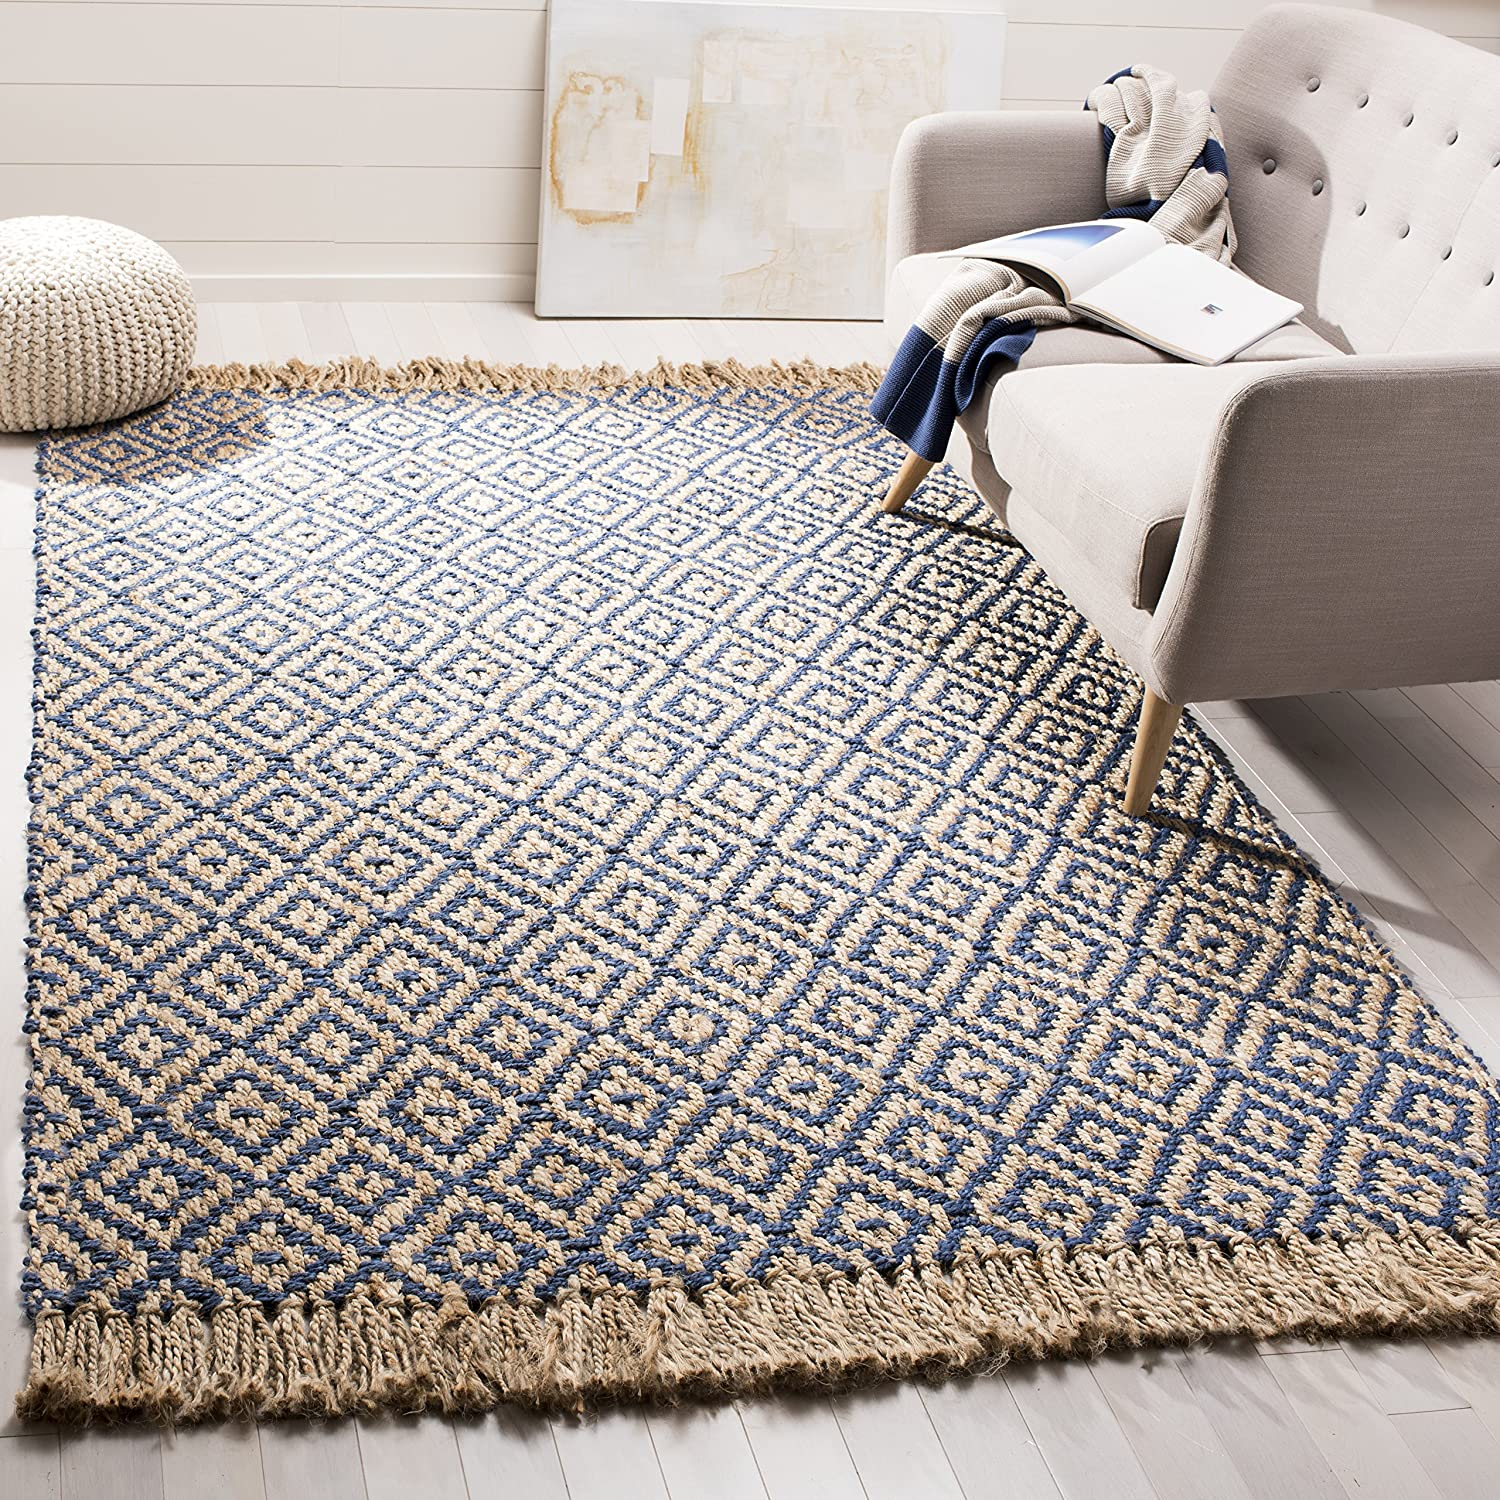 Hand-Woven Tropical Blue and Natural Jute Area Rug